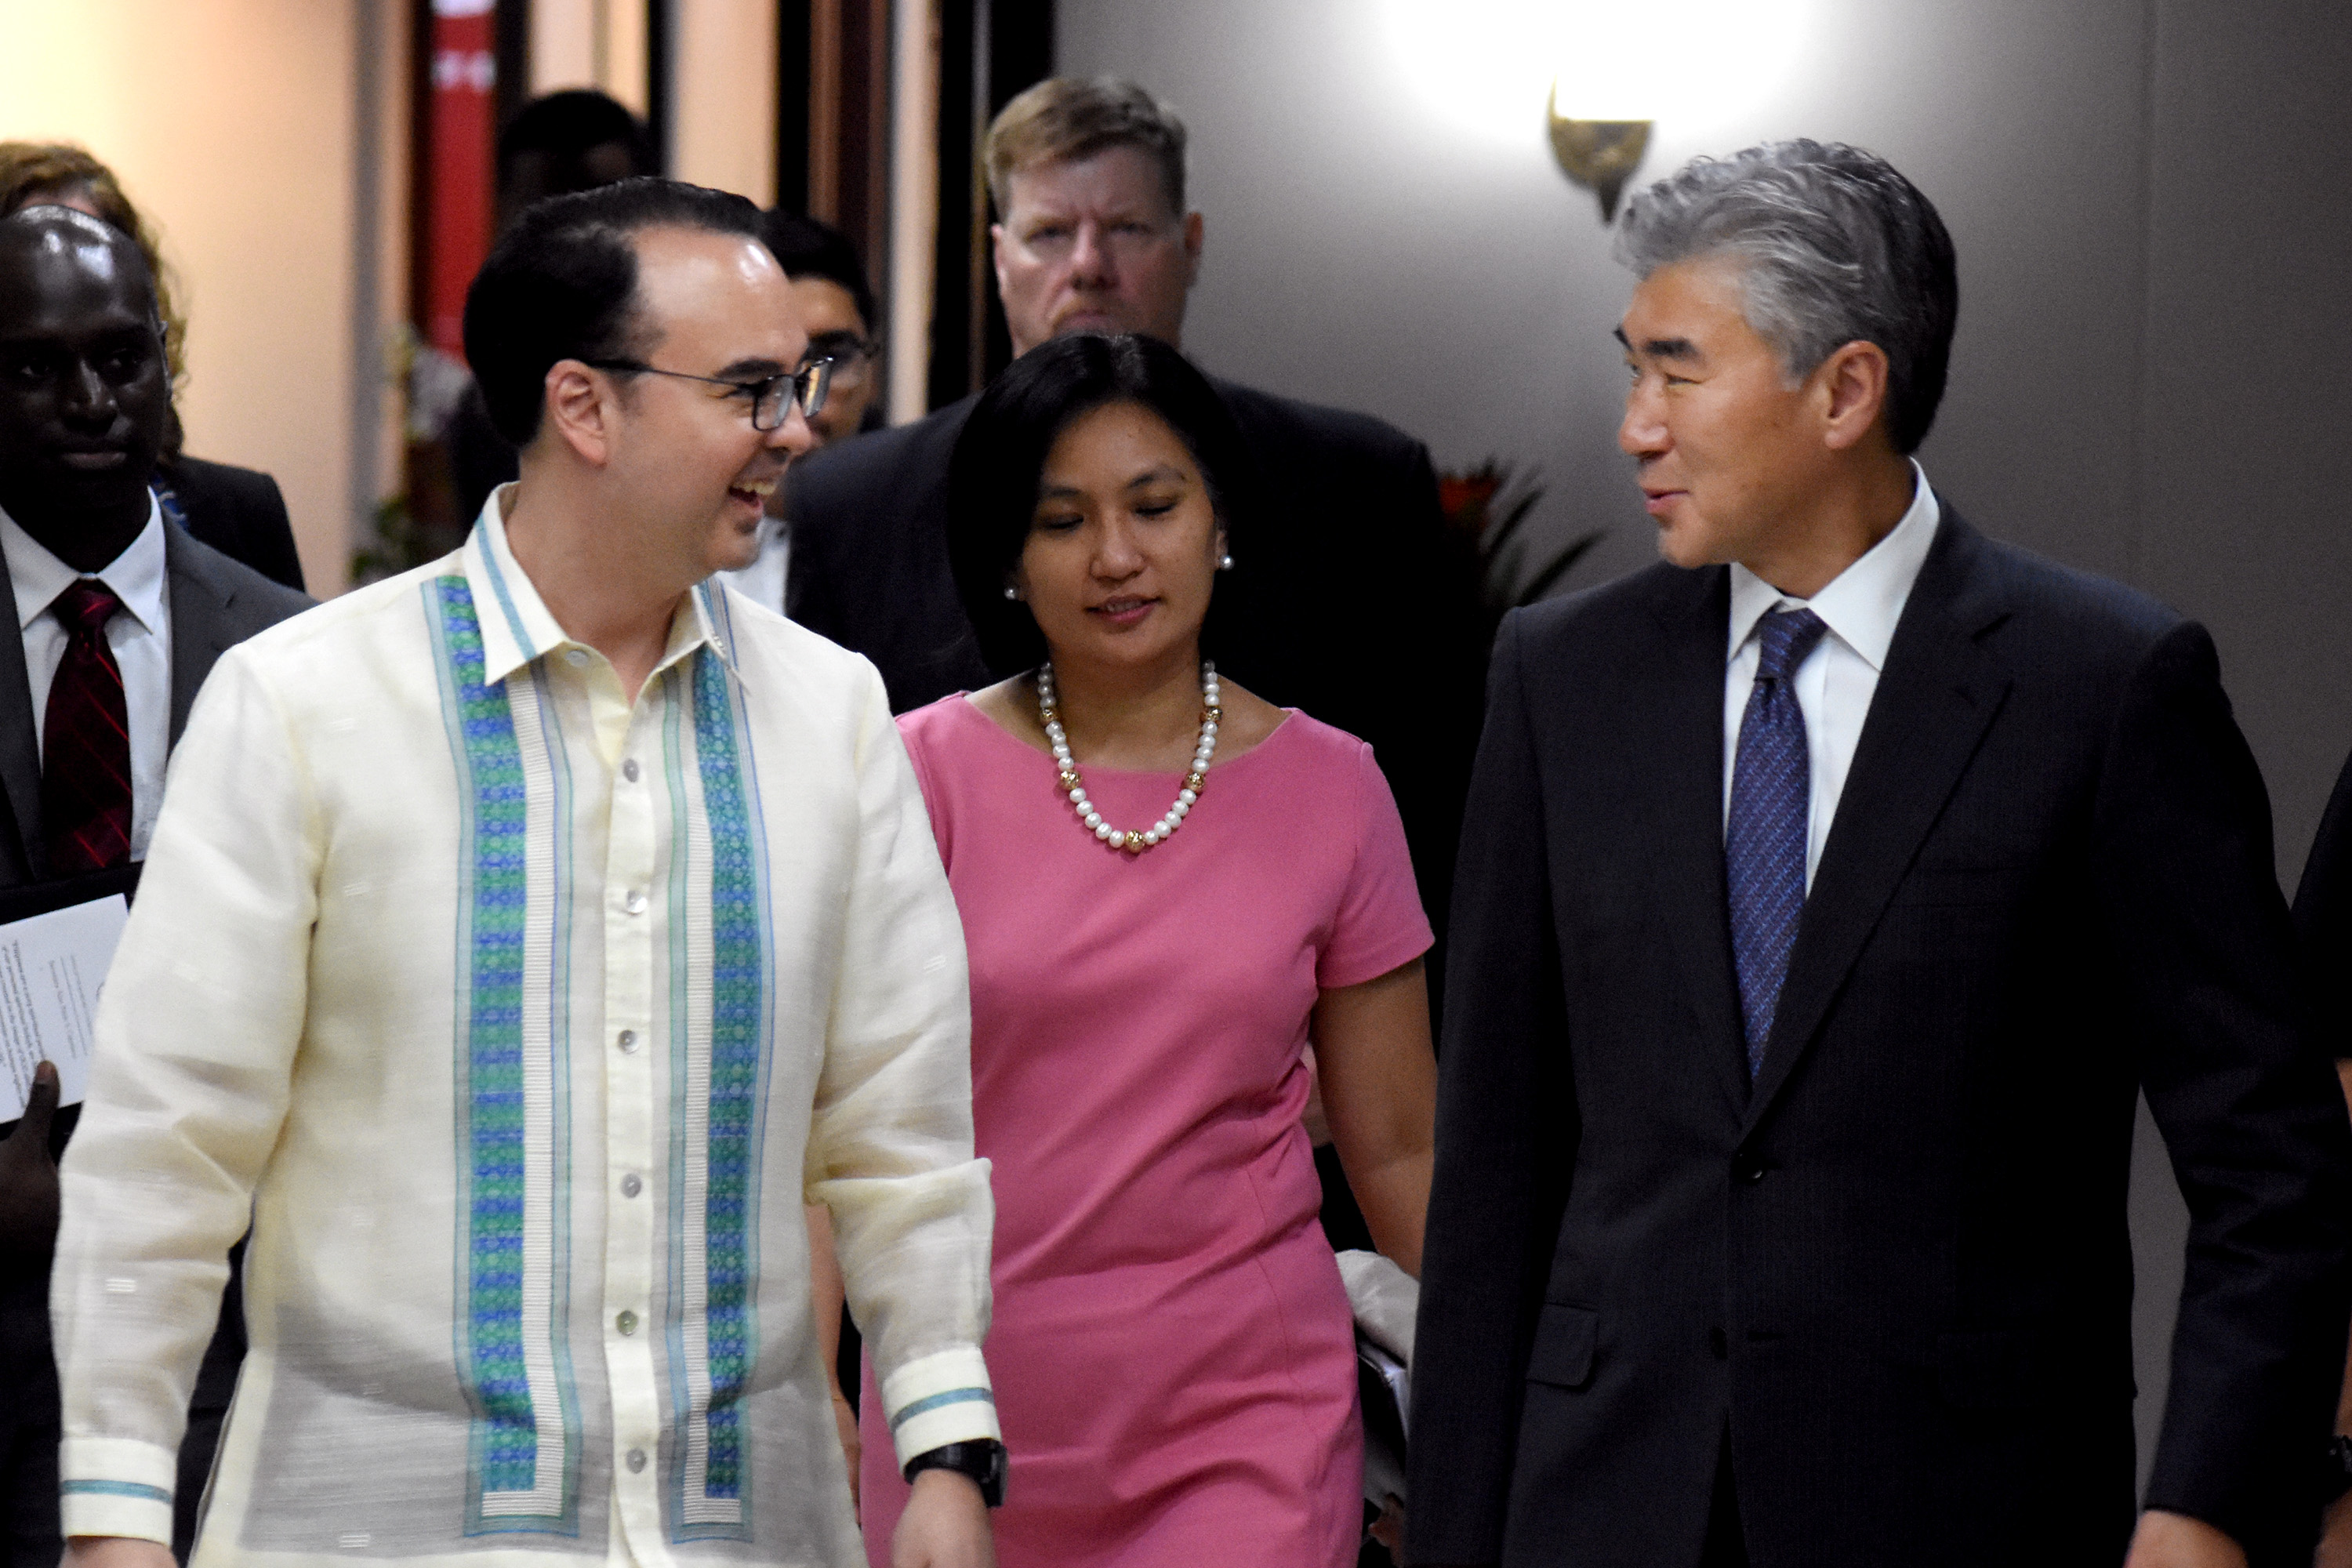 BETTER TIES. Philippine Foreign Secretary Alan Peter Cayetano and US Ambassador to the Philippines Sung Kim chat at the Philippine Department of Foreign Affairs on September 8, 2017, the day they sign a document on a partnership to reduce drug demand in the Philippines. Photo by Angie de Silva/Rappler